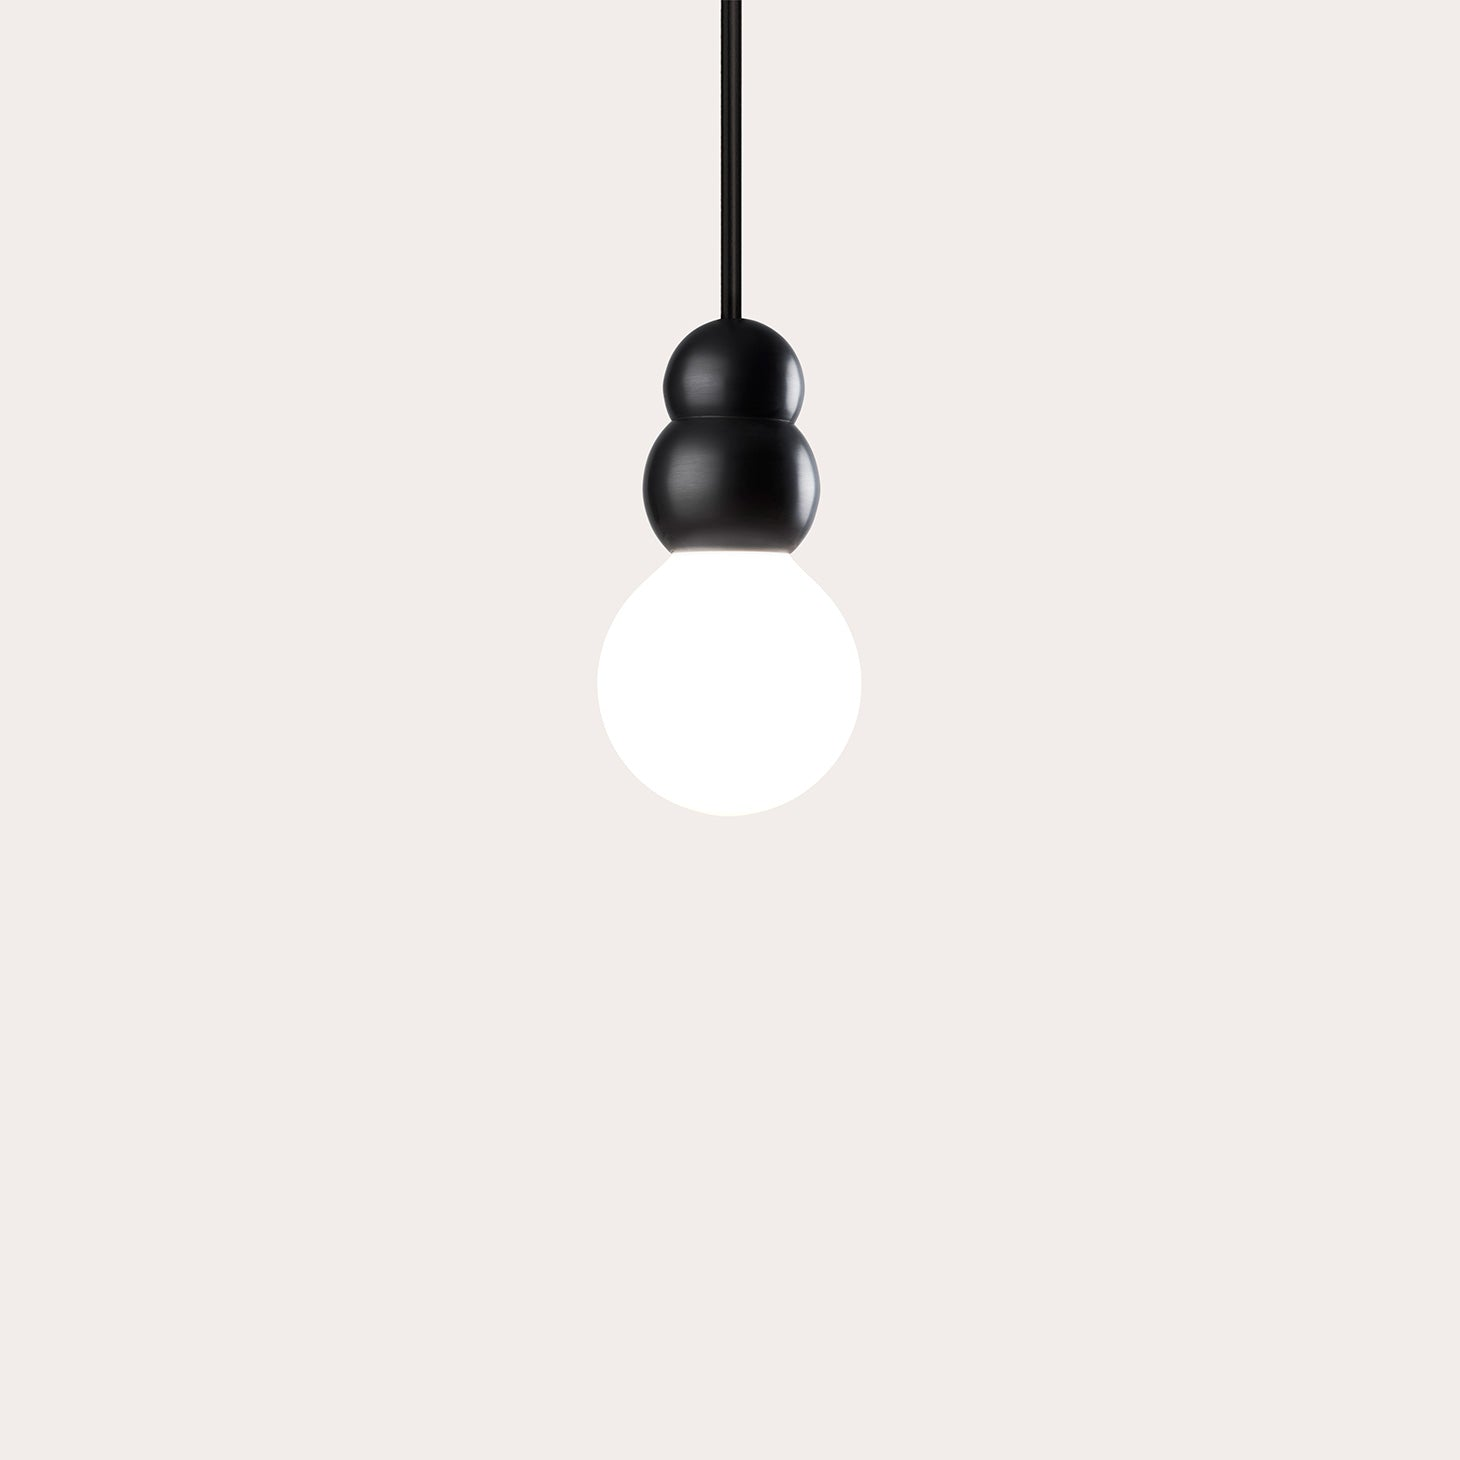 Ball Light Large Pendant Rod Lighting Michael Anastassiades Designer Furniture Sku: 717-160-10023